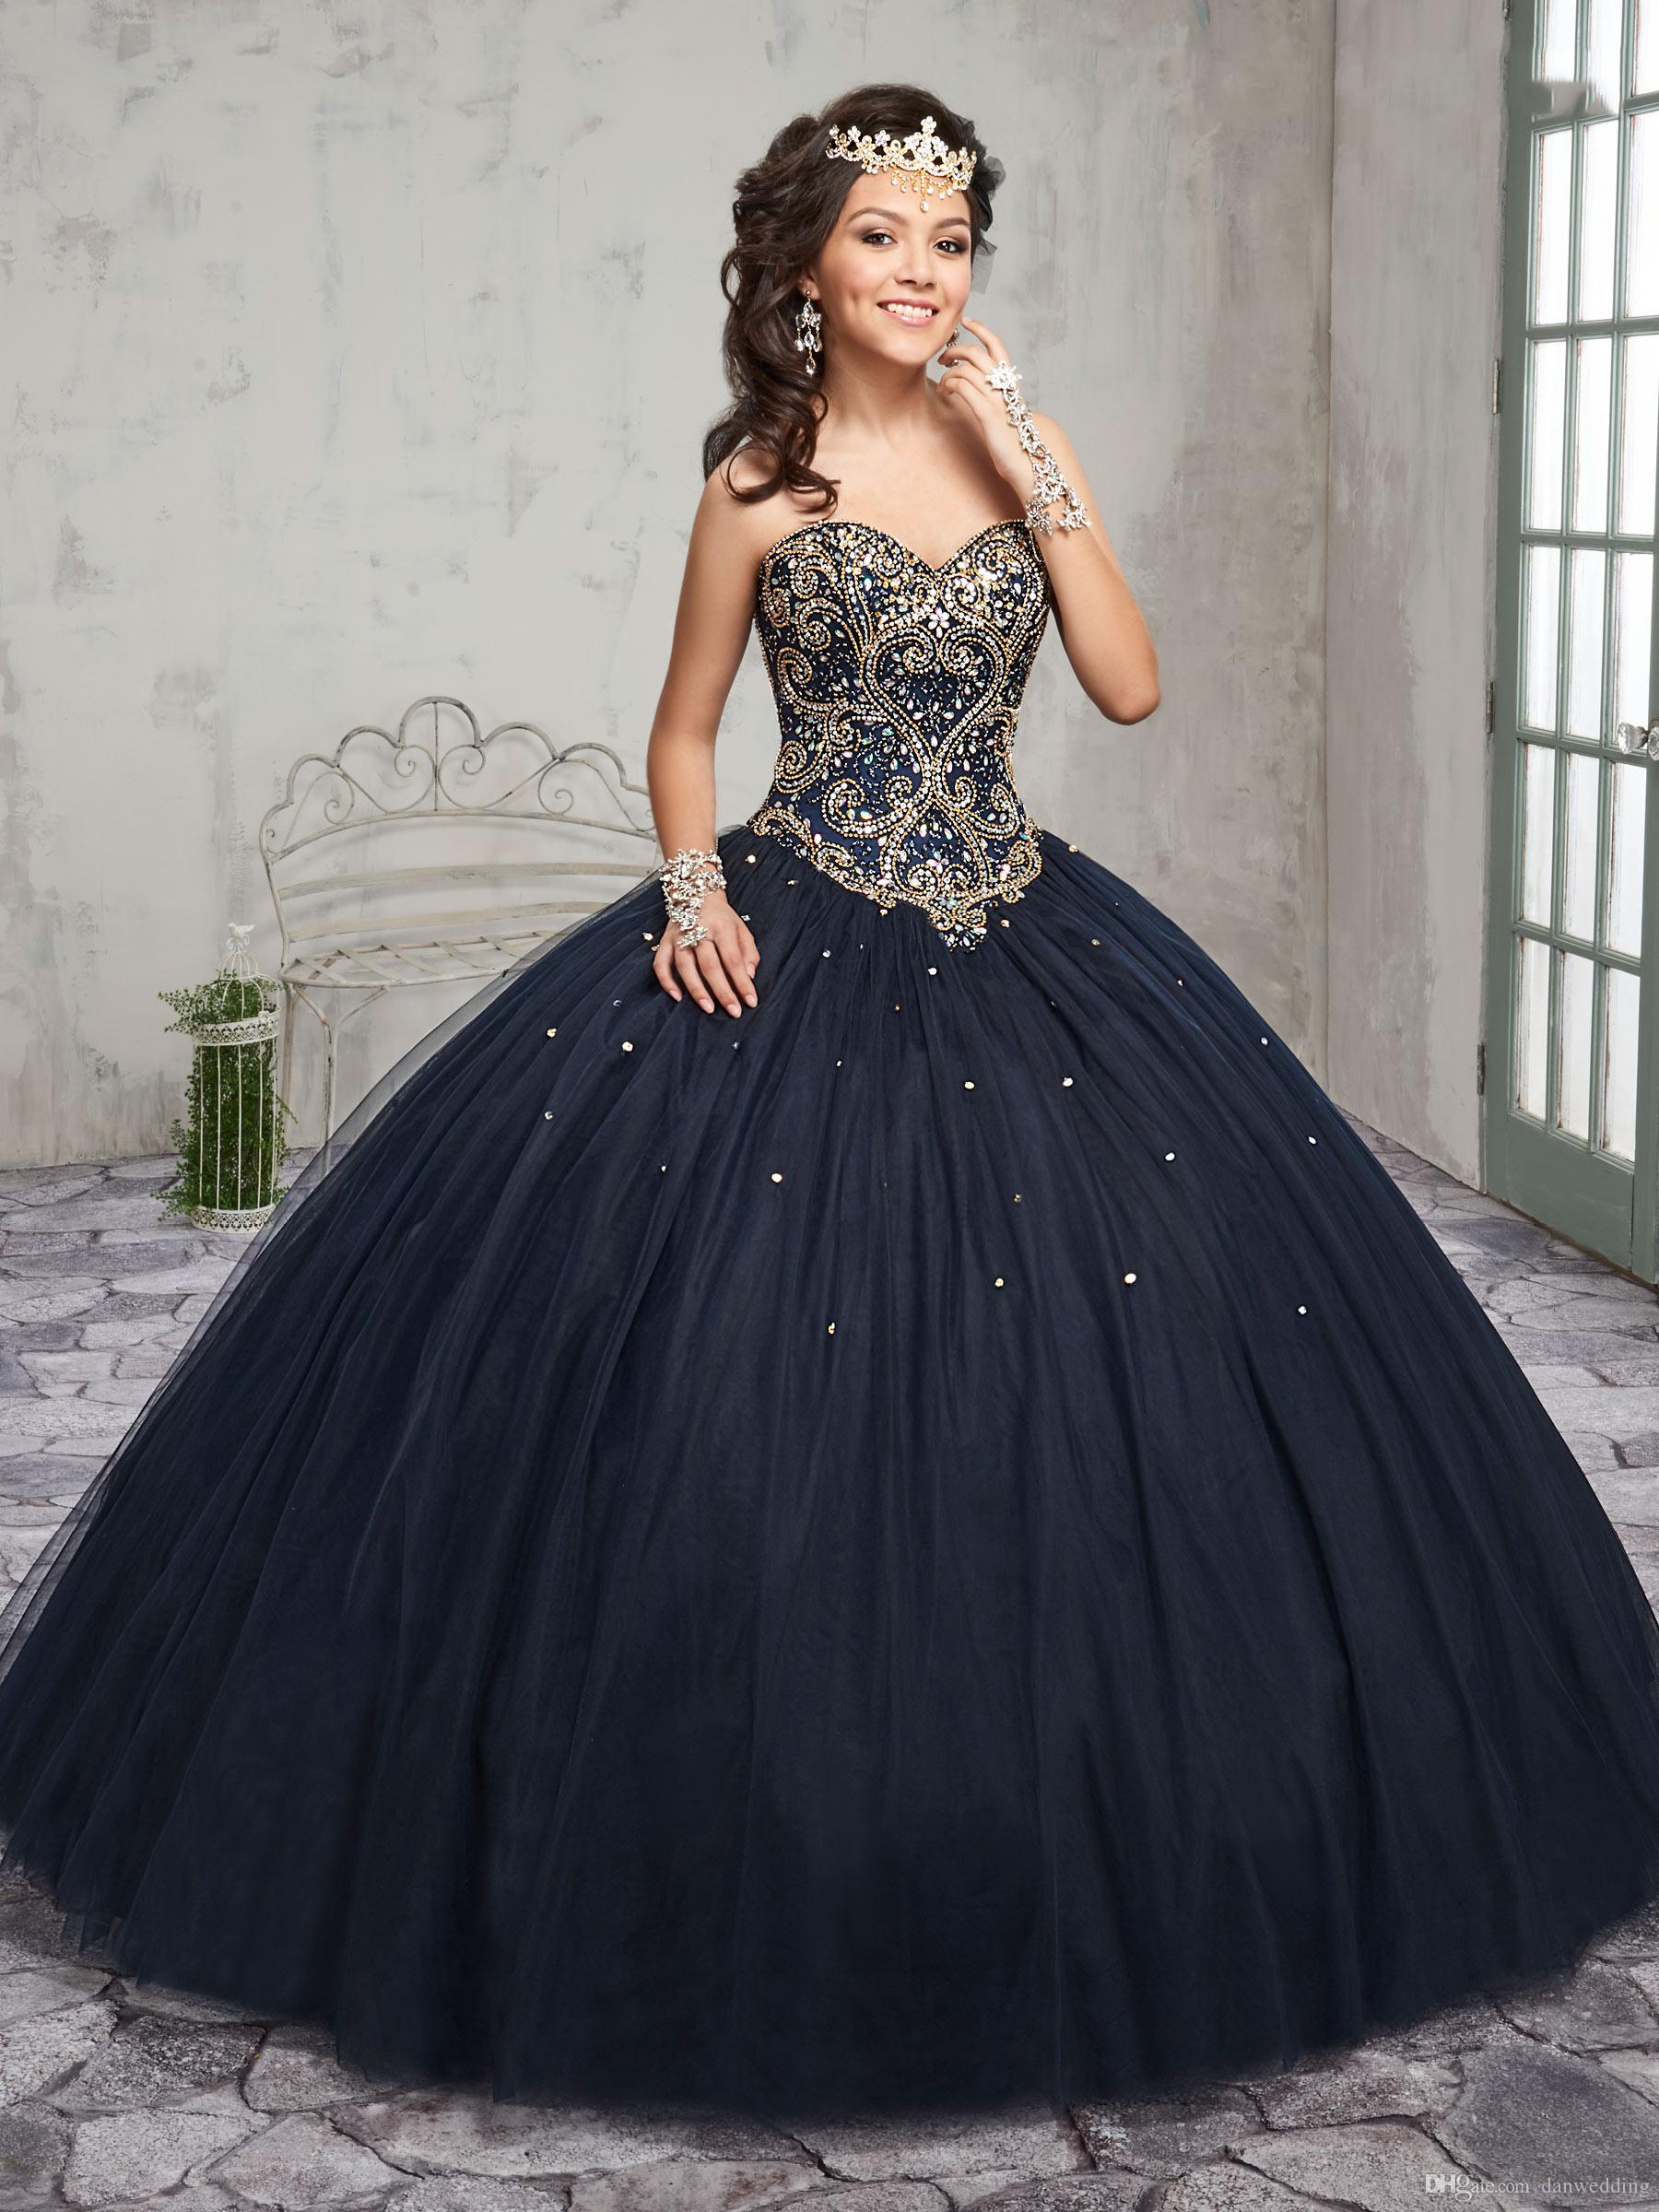 fc016c1d637 Elegant Navy Blue Burgundy Sweetheart Beads Quinceanera Dresses Special  Occasion Party Dresses Dance Prom Dresses Custom Size 2 18 KF1229348 Green  ...